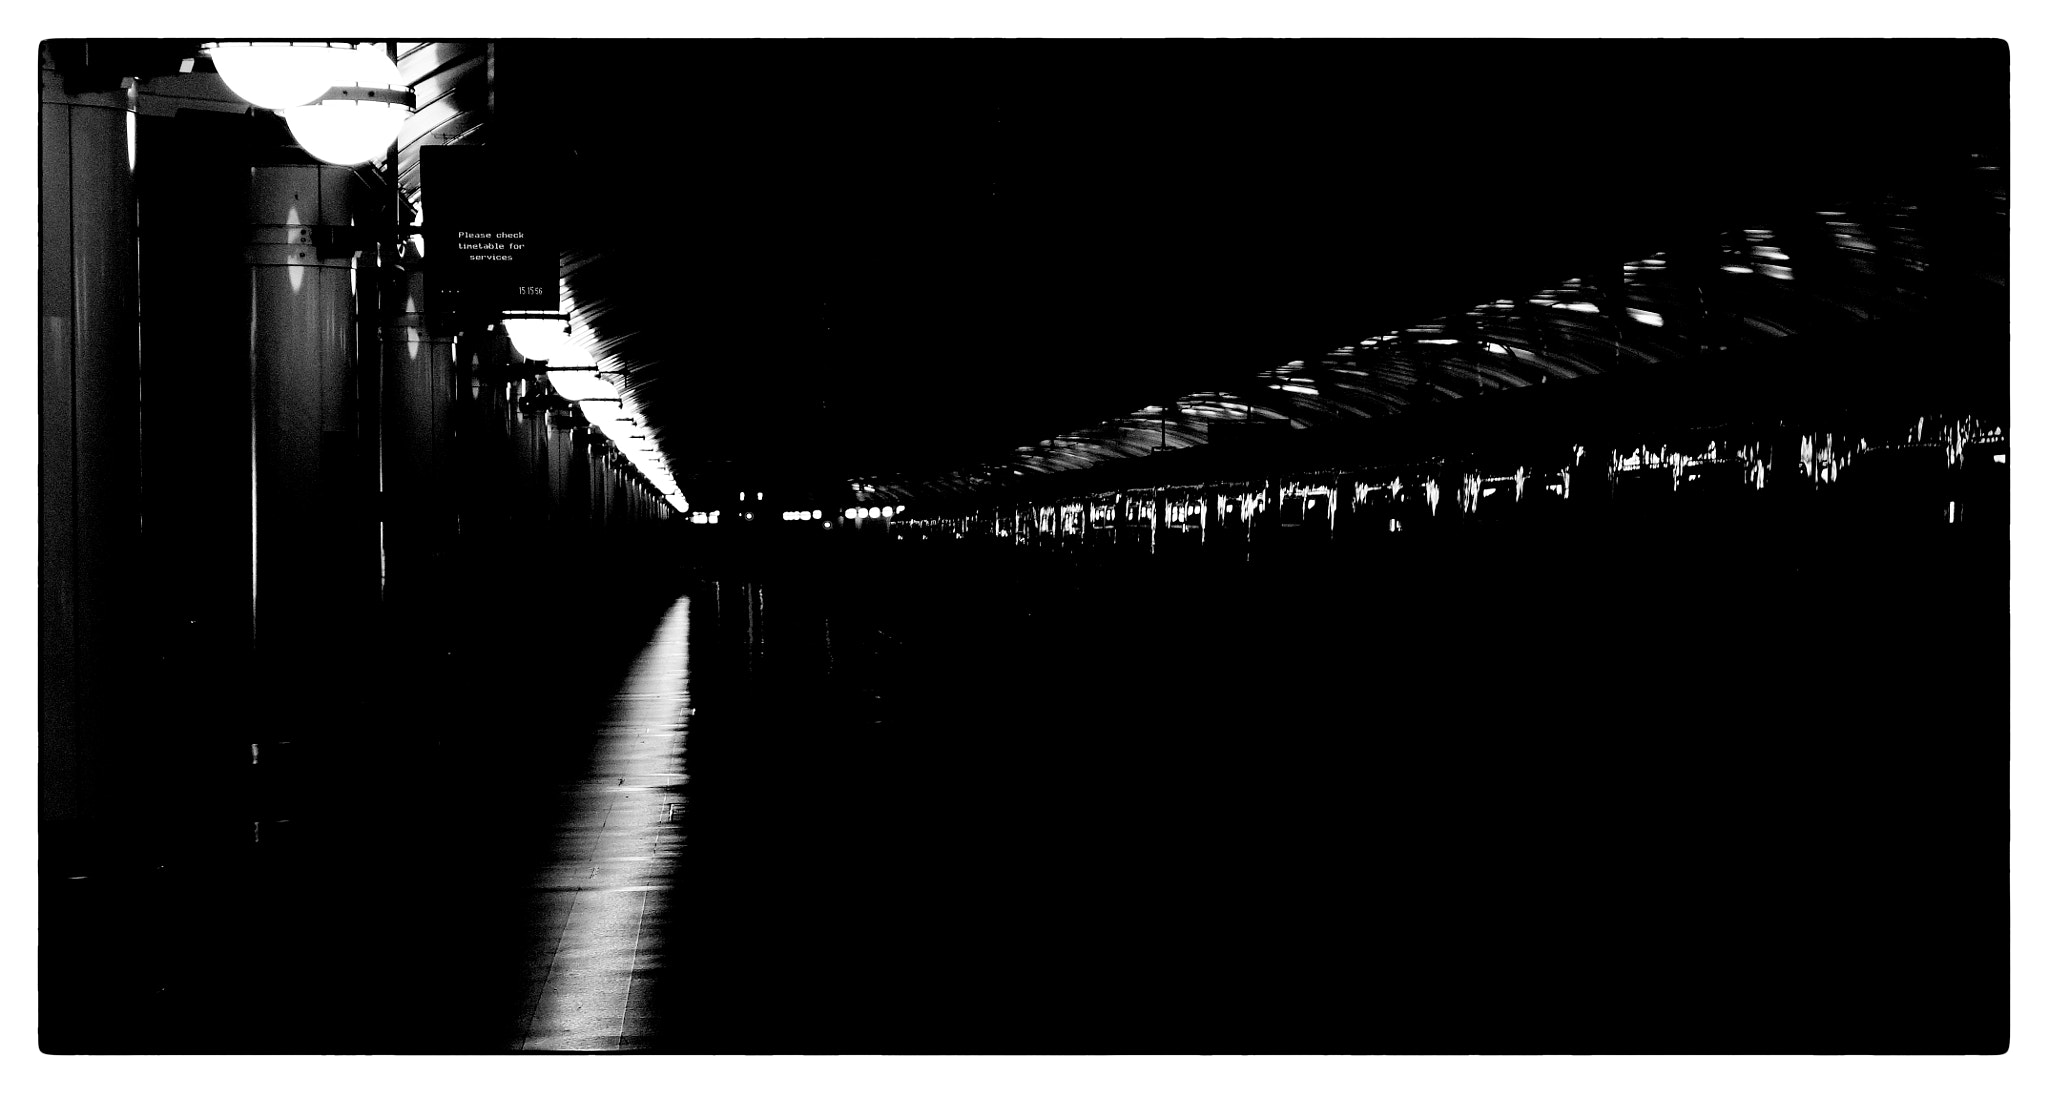 Photograph Liverpool Street Station by David Pink on 500px